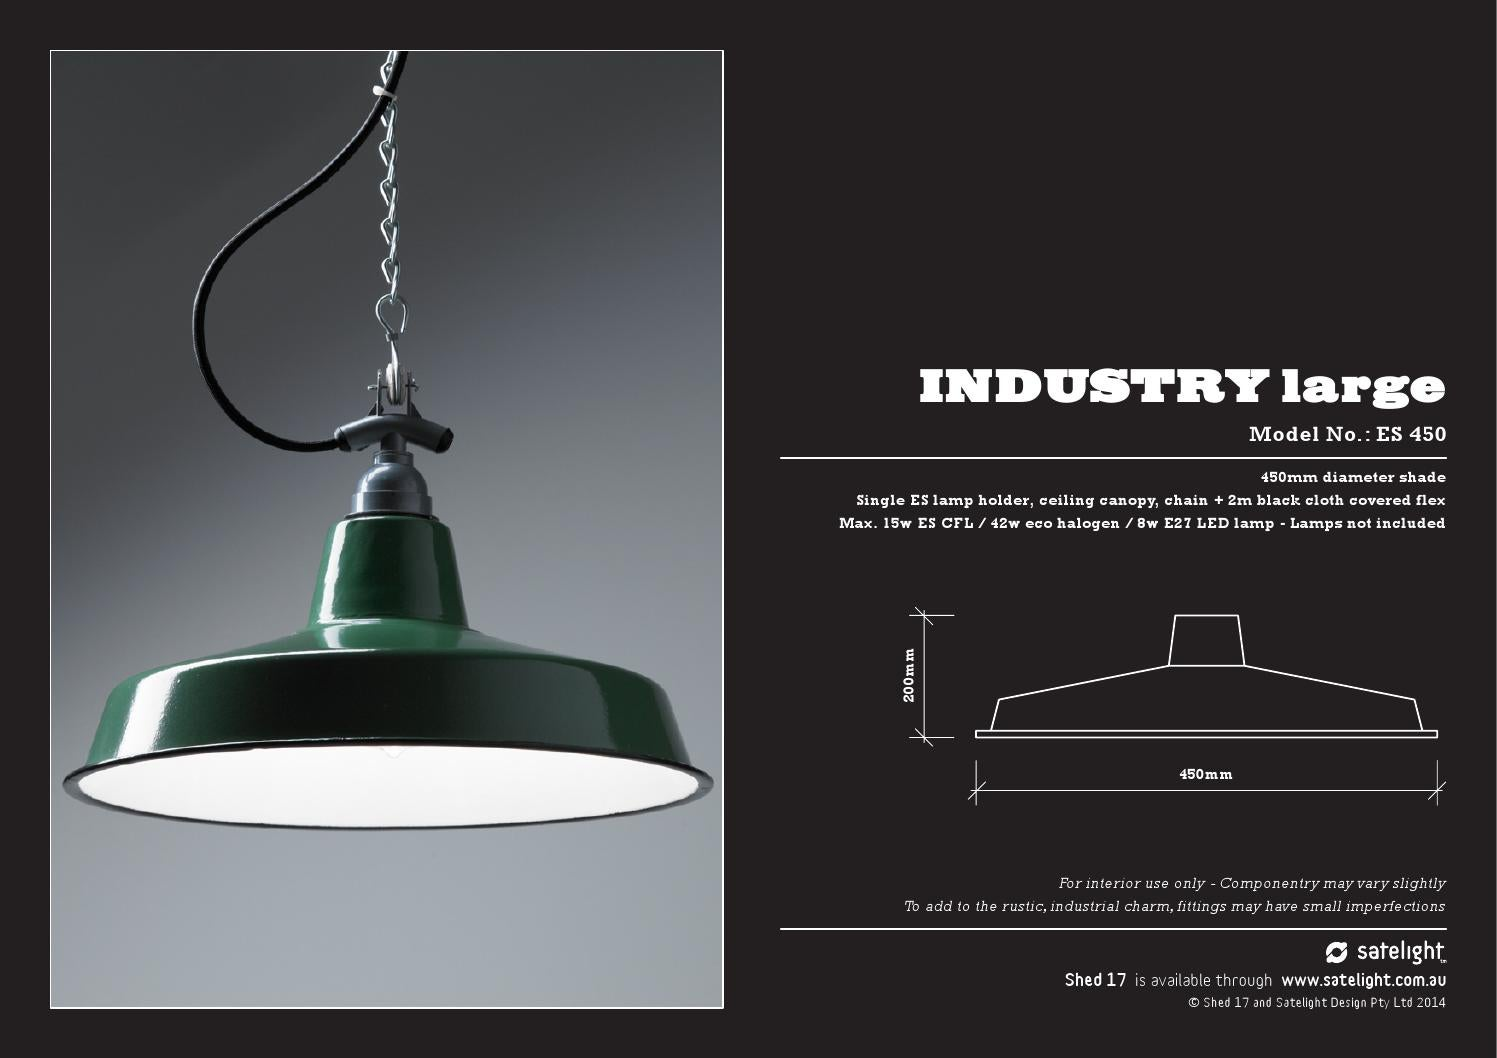 Shed 17 Lighting Catalogue